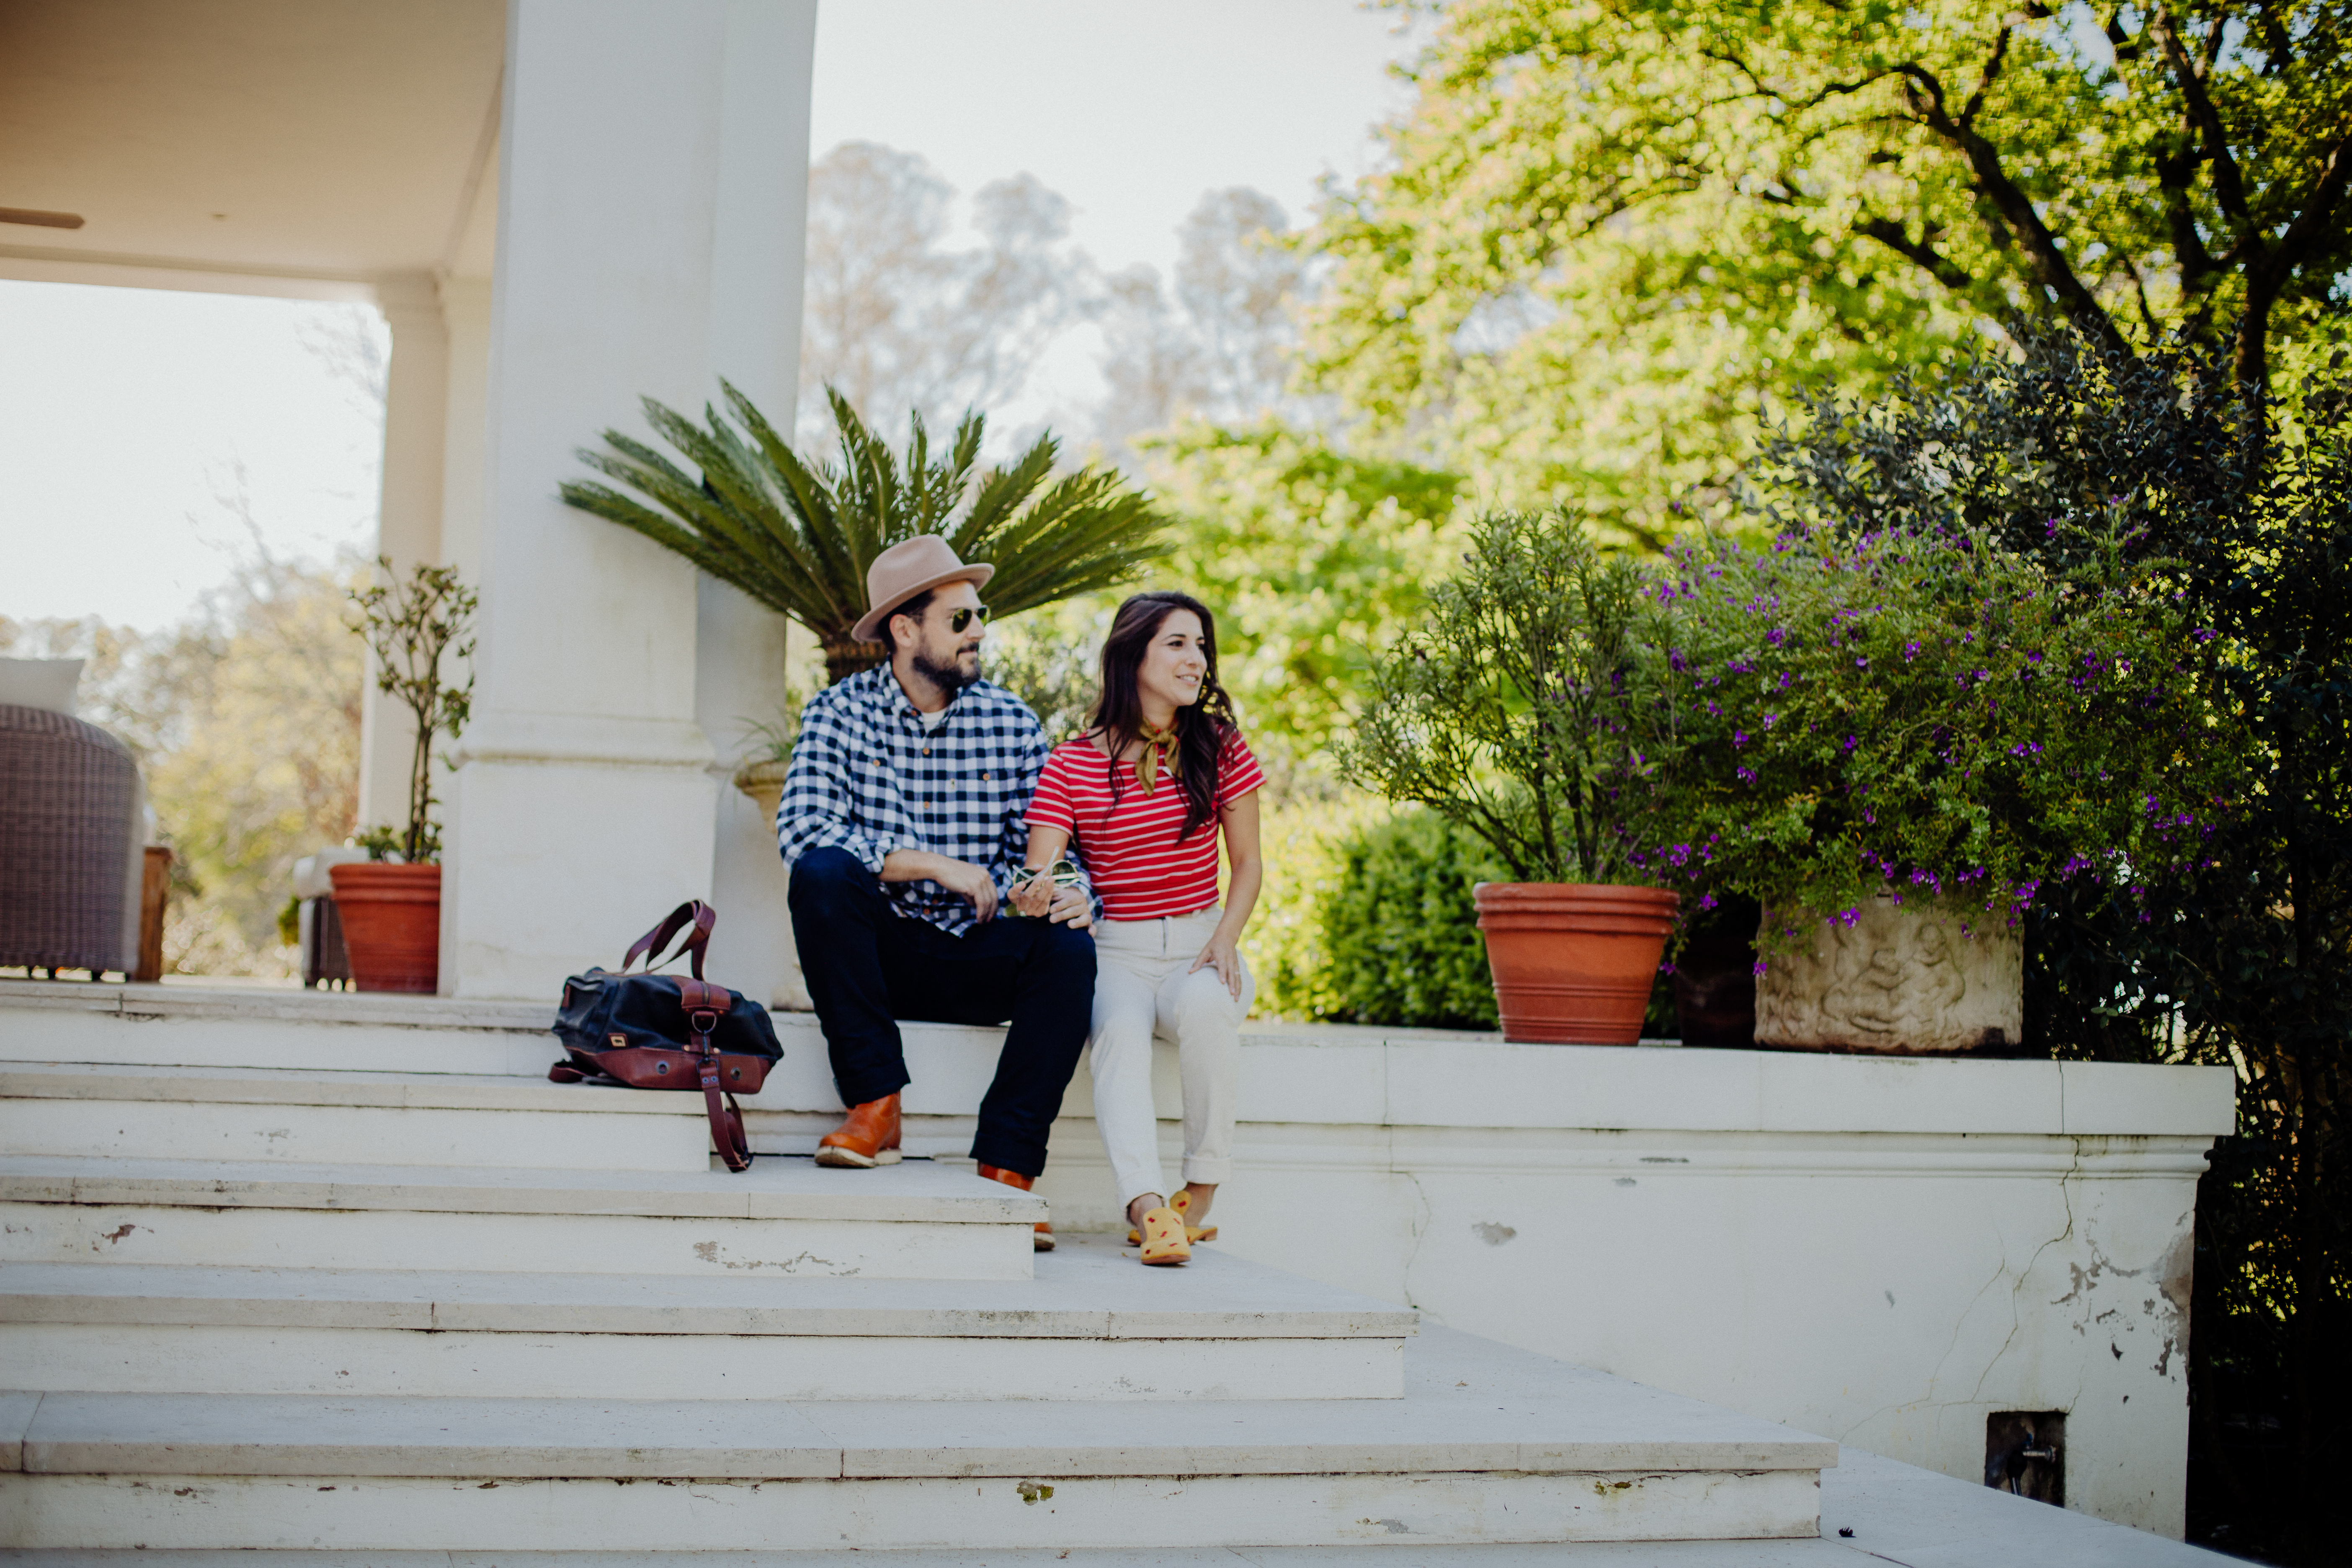 Lifestyle bloggers Devin McGovern and wife Marlene Martinez of Outlined Cloth relax in Argentina